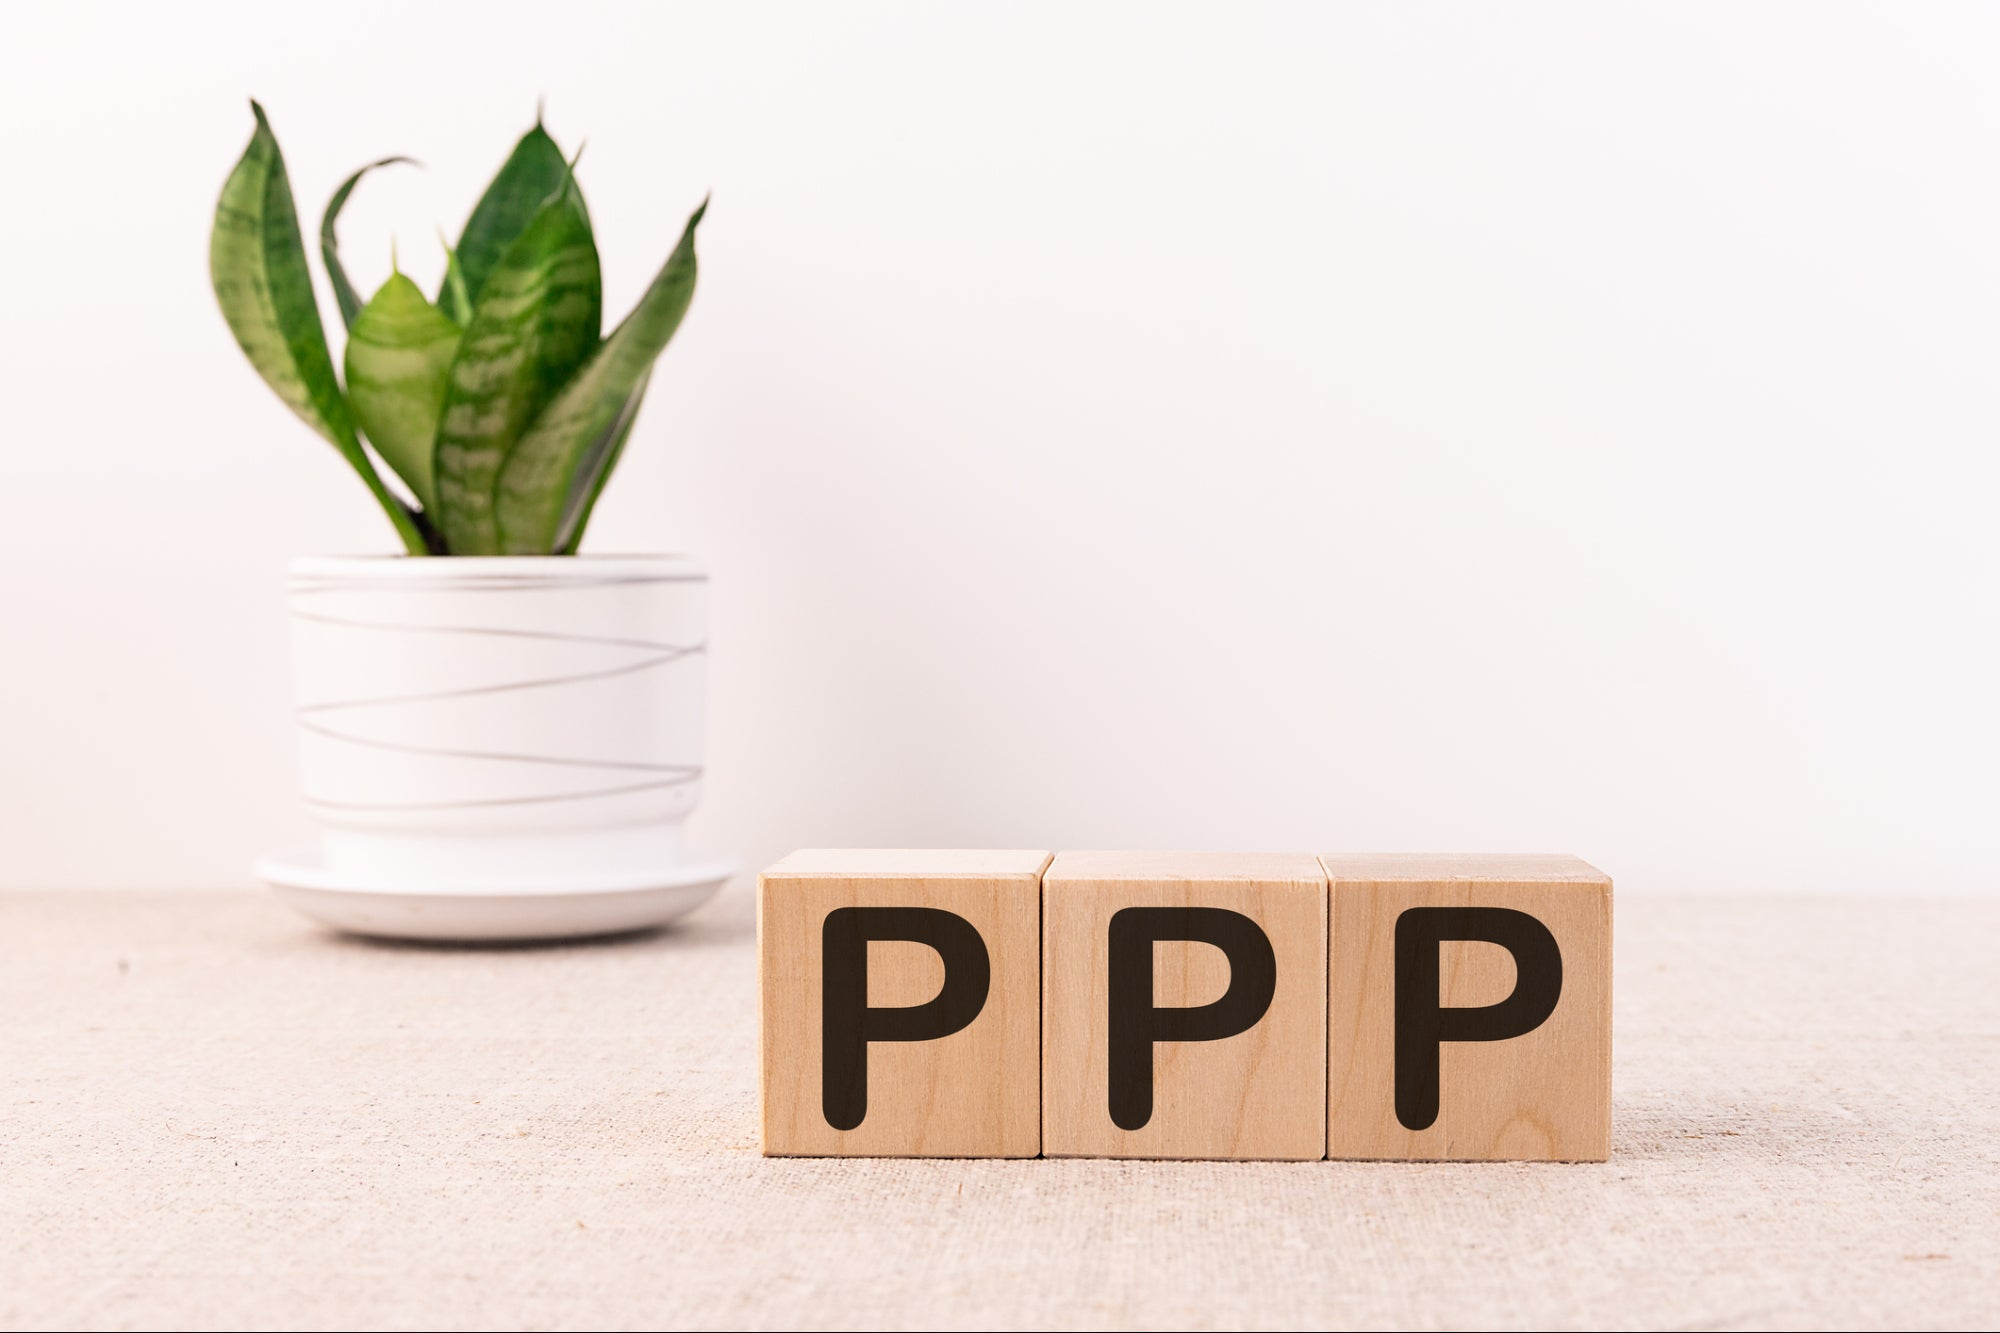 Still Need PPP? This SBA Tool Will Match You With Lenders In 2 Days